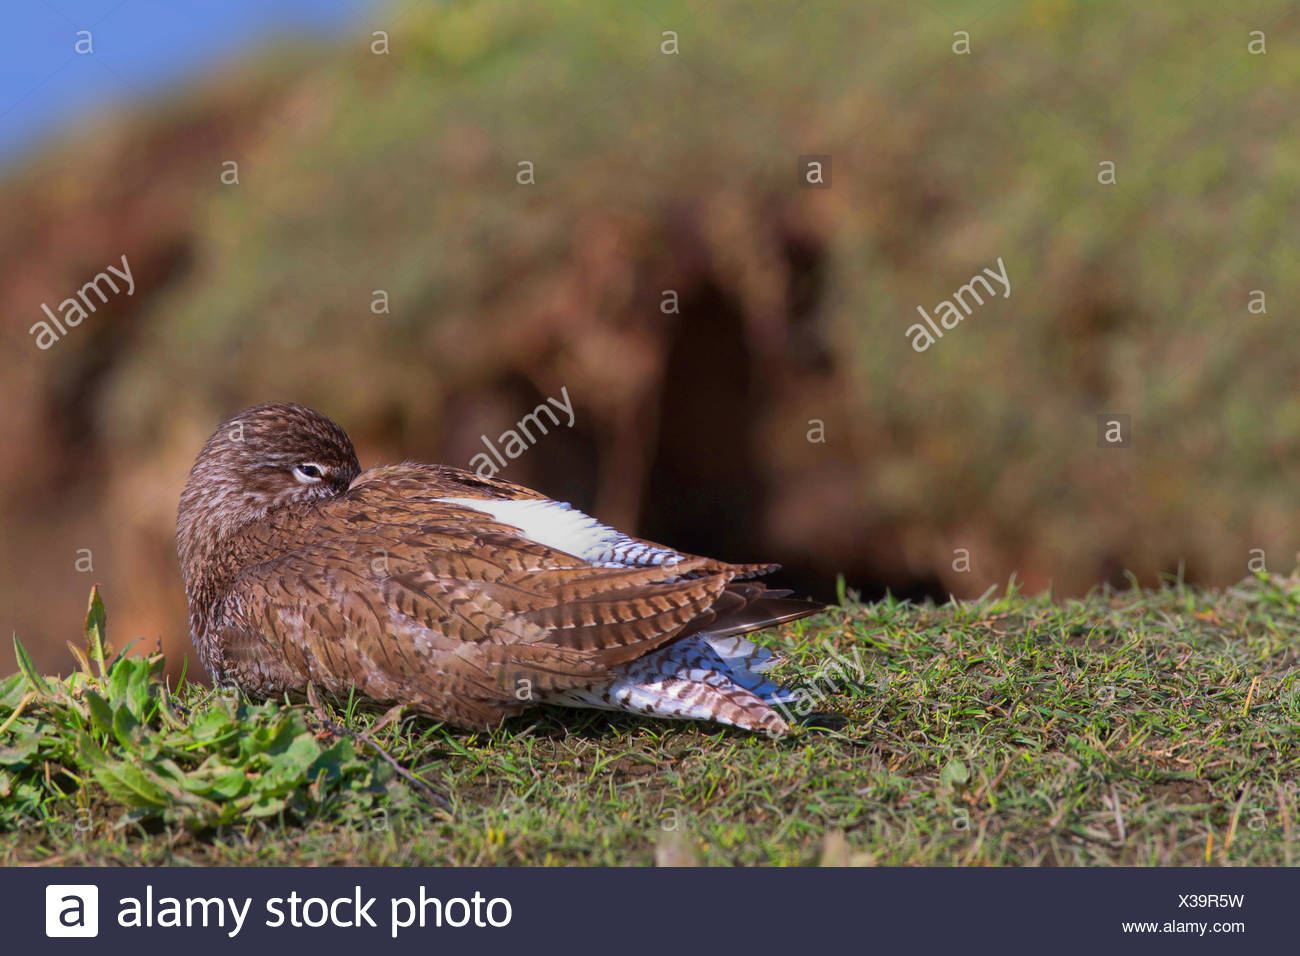 common redshank (Tringa totanus), sleeping in breeding plumage at a cliff, side view, Germany, Schleswig-Holstein - Stock Image